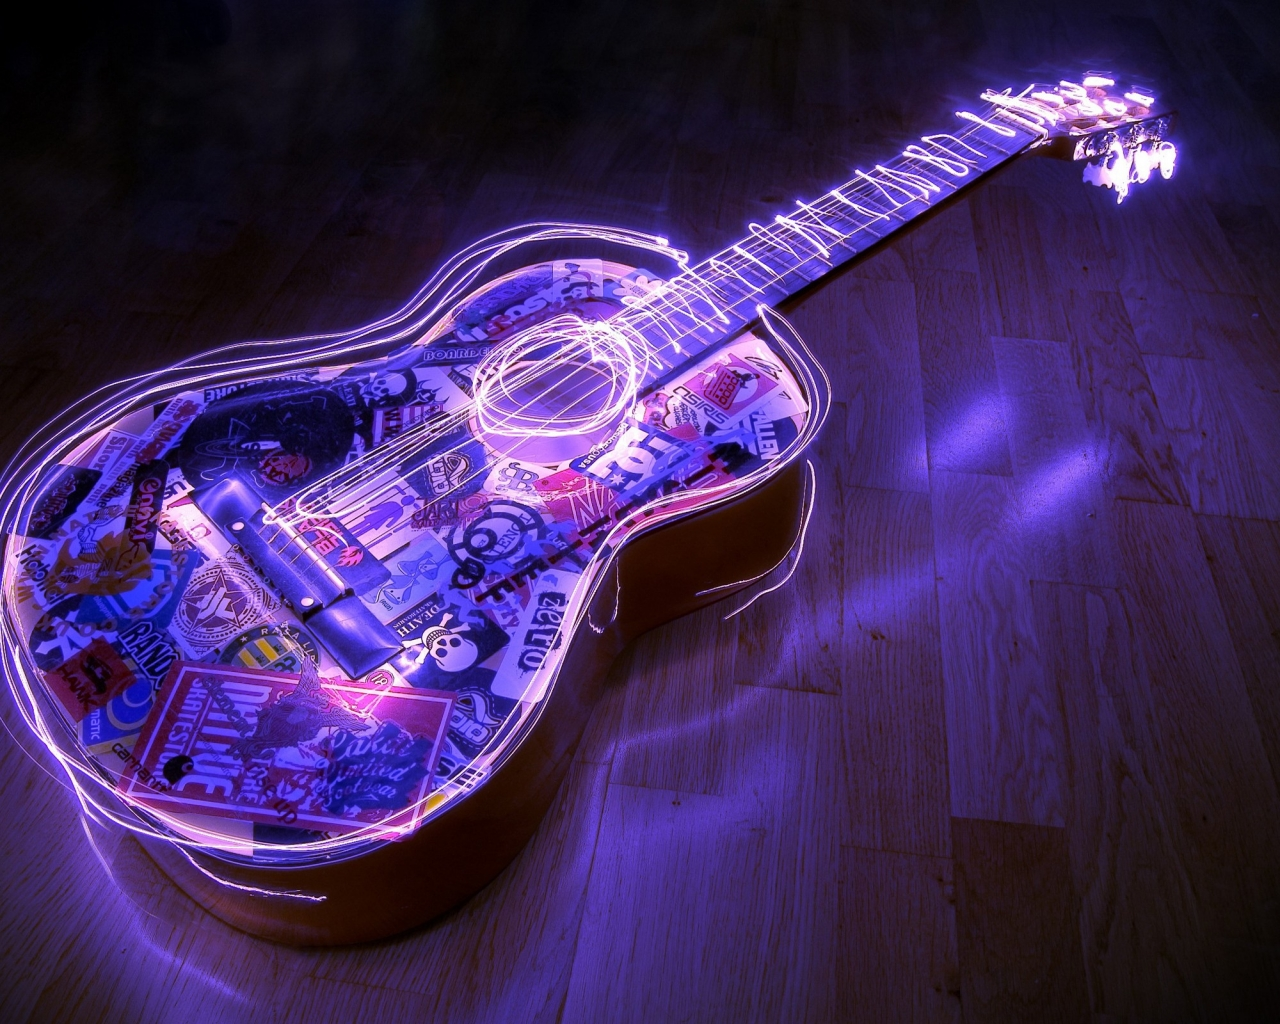 Guitarra con bordes neon - 1280x1024